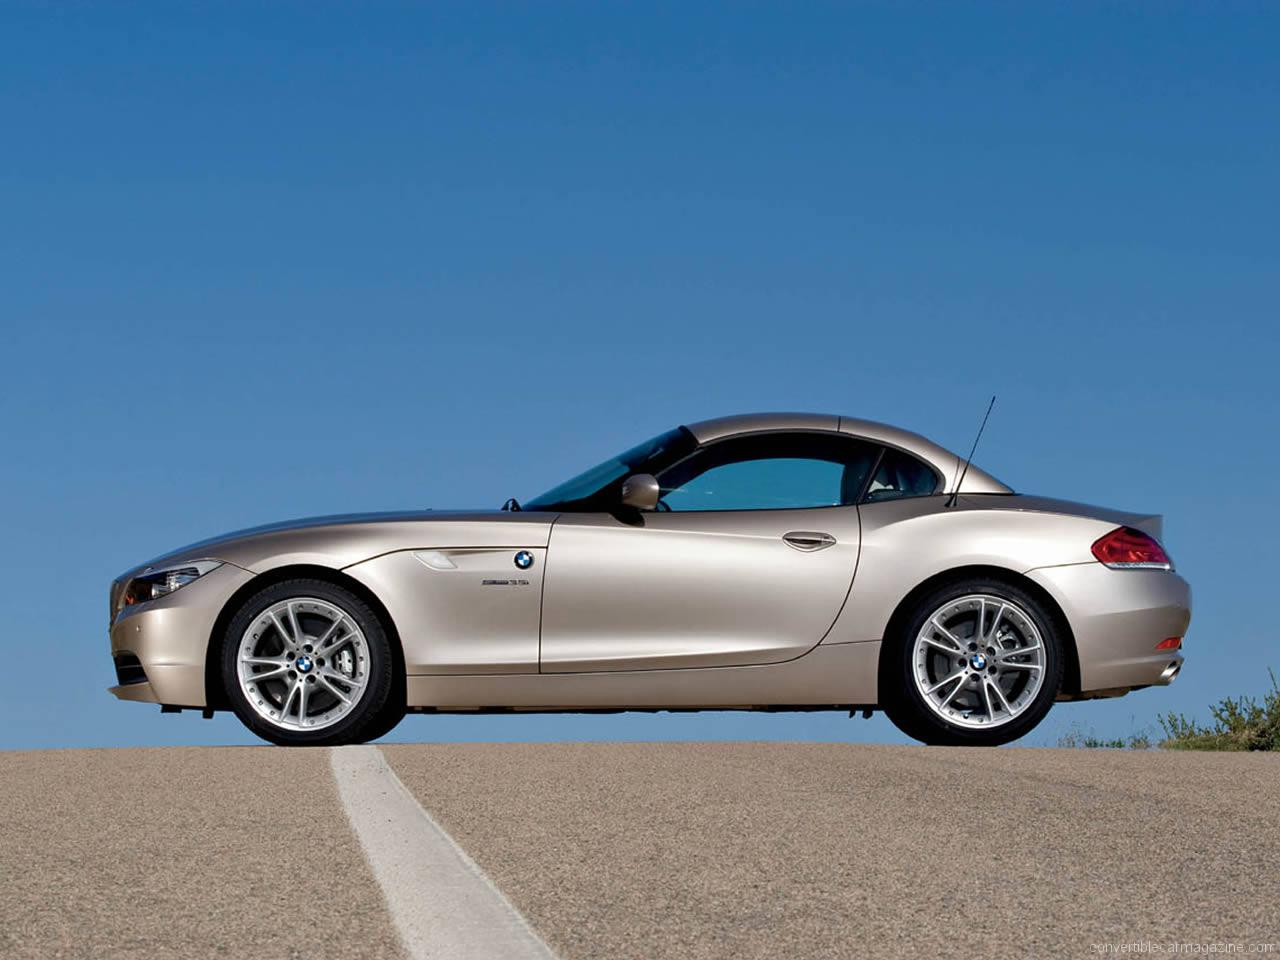 BMW Z4 sDrive23i Roadster Buying Guide